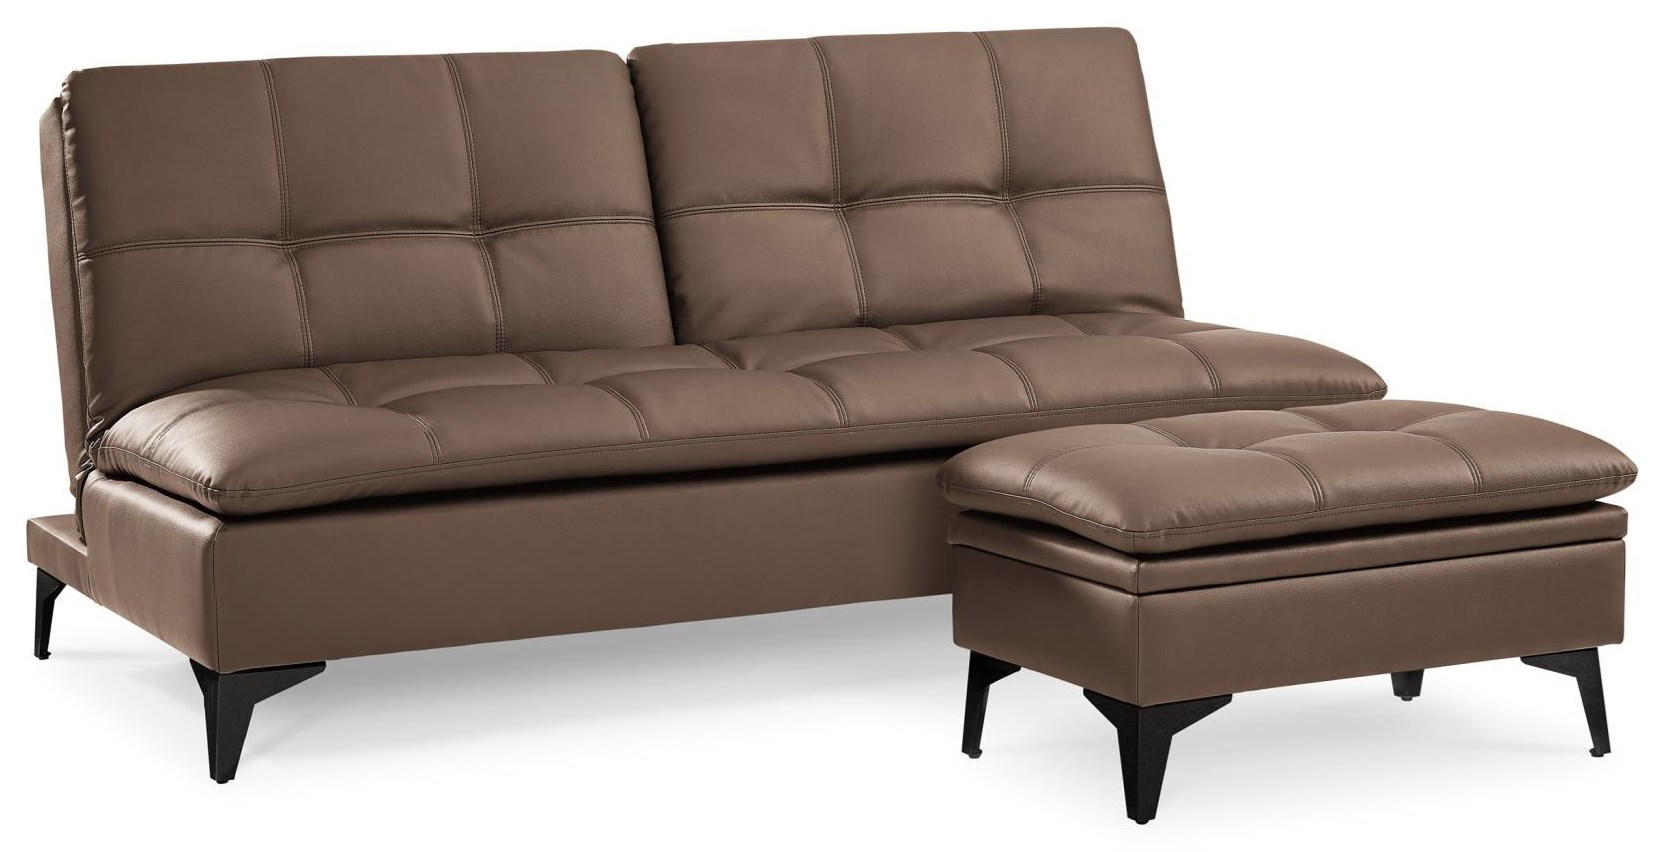 Sedona Sofa Convertible with Storage Ottoman by Sealy Sofa Convertibles at Red Knot